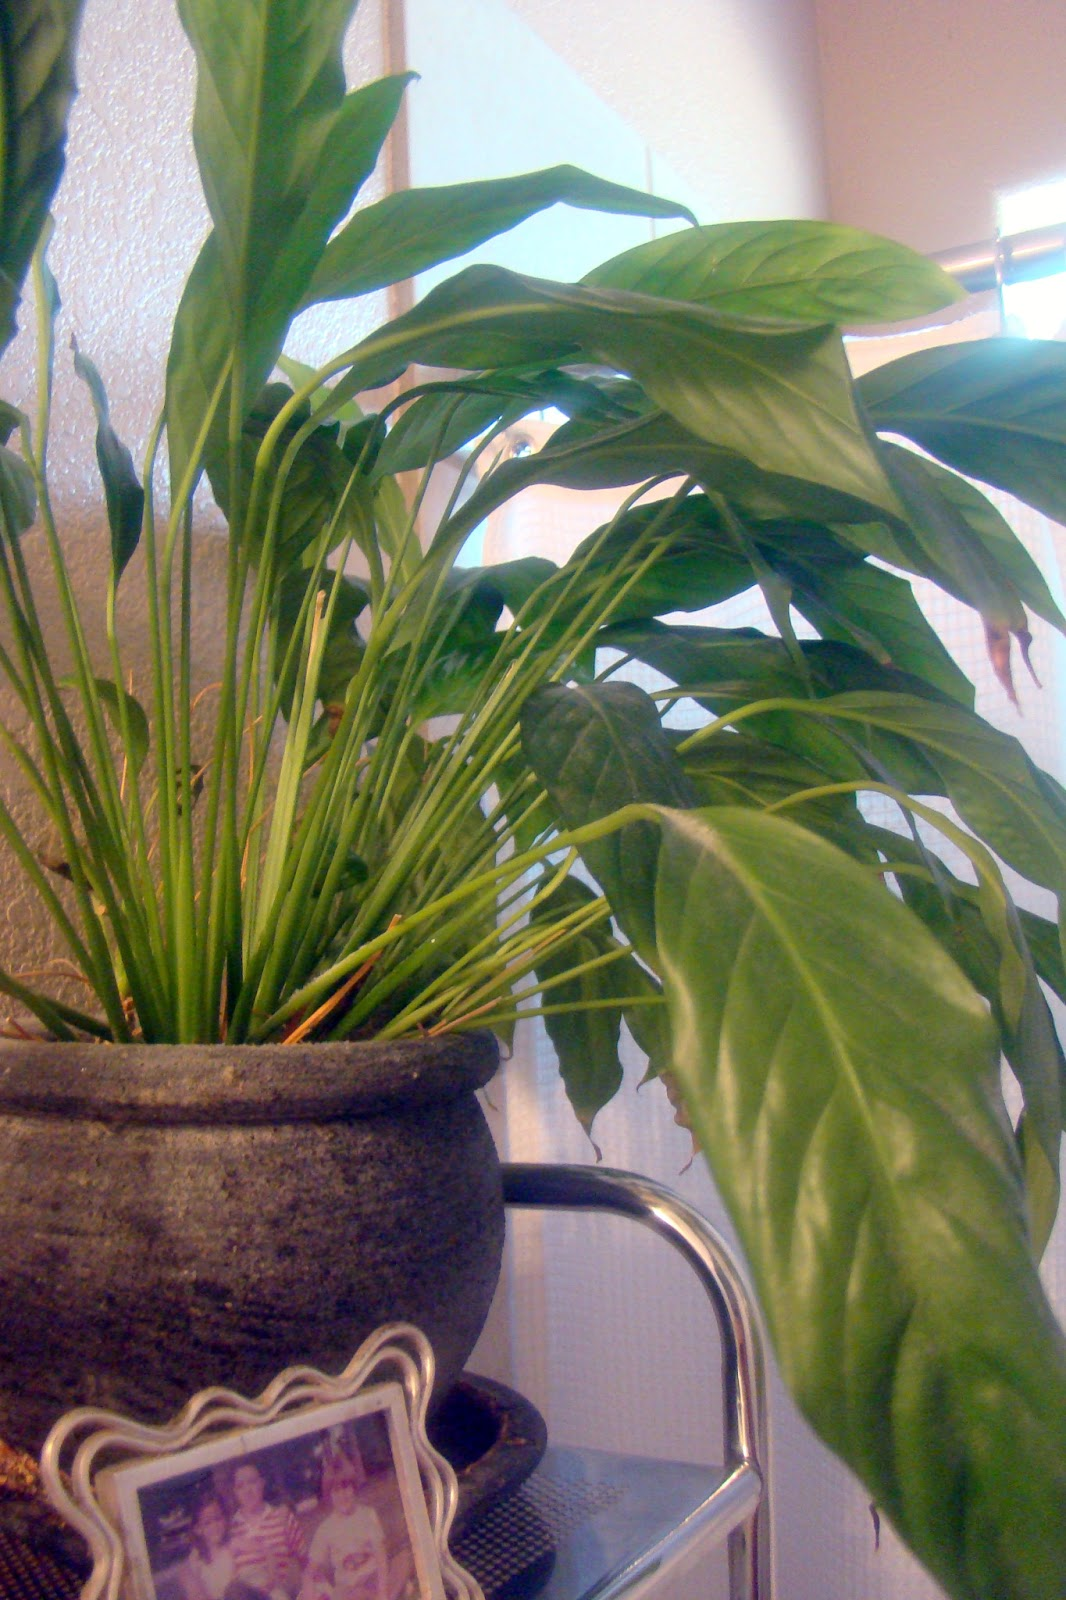 Nourished and Nurtured: The Houseplant That Will Keep All Your Other on pineapple plant house plant, dragon plant, black gold lily plant, zamiifolia house plant, croton house plant, peace lily plant benefits, problems with peace lily plant, artificial bamboo house plant, black bamboo potted plant, peace lily family plant, peace lily potted plant, classic peace lily plant, chinese evergreen house plant, marginata house plant, weeping fig house plant, peace plant brown leaves, holly house plant, white and green leaves house plant, funeral peace lily plant, droopy peace lily plant,